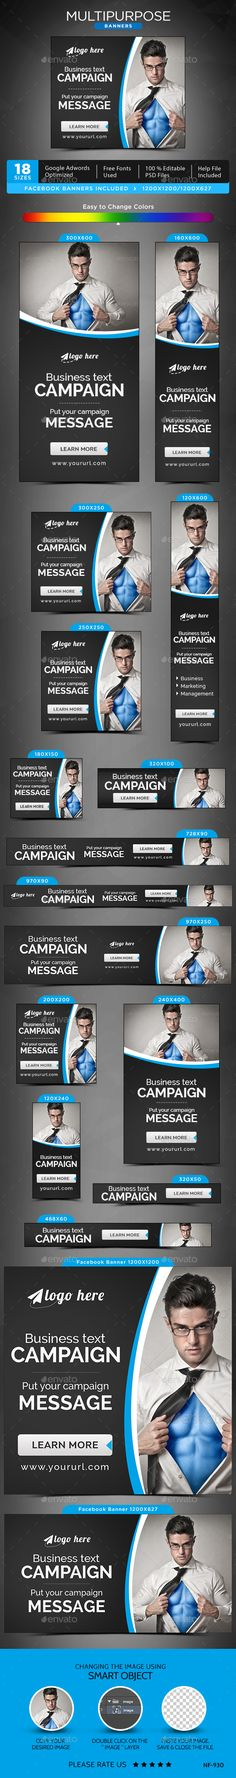 Multipurpose Web Banners Template PSD #design #ad Download: http://graphicriver.net/item/multipurpose-banners/14107204?ref=ksioks